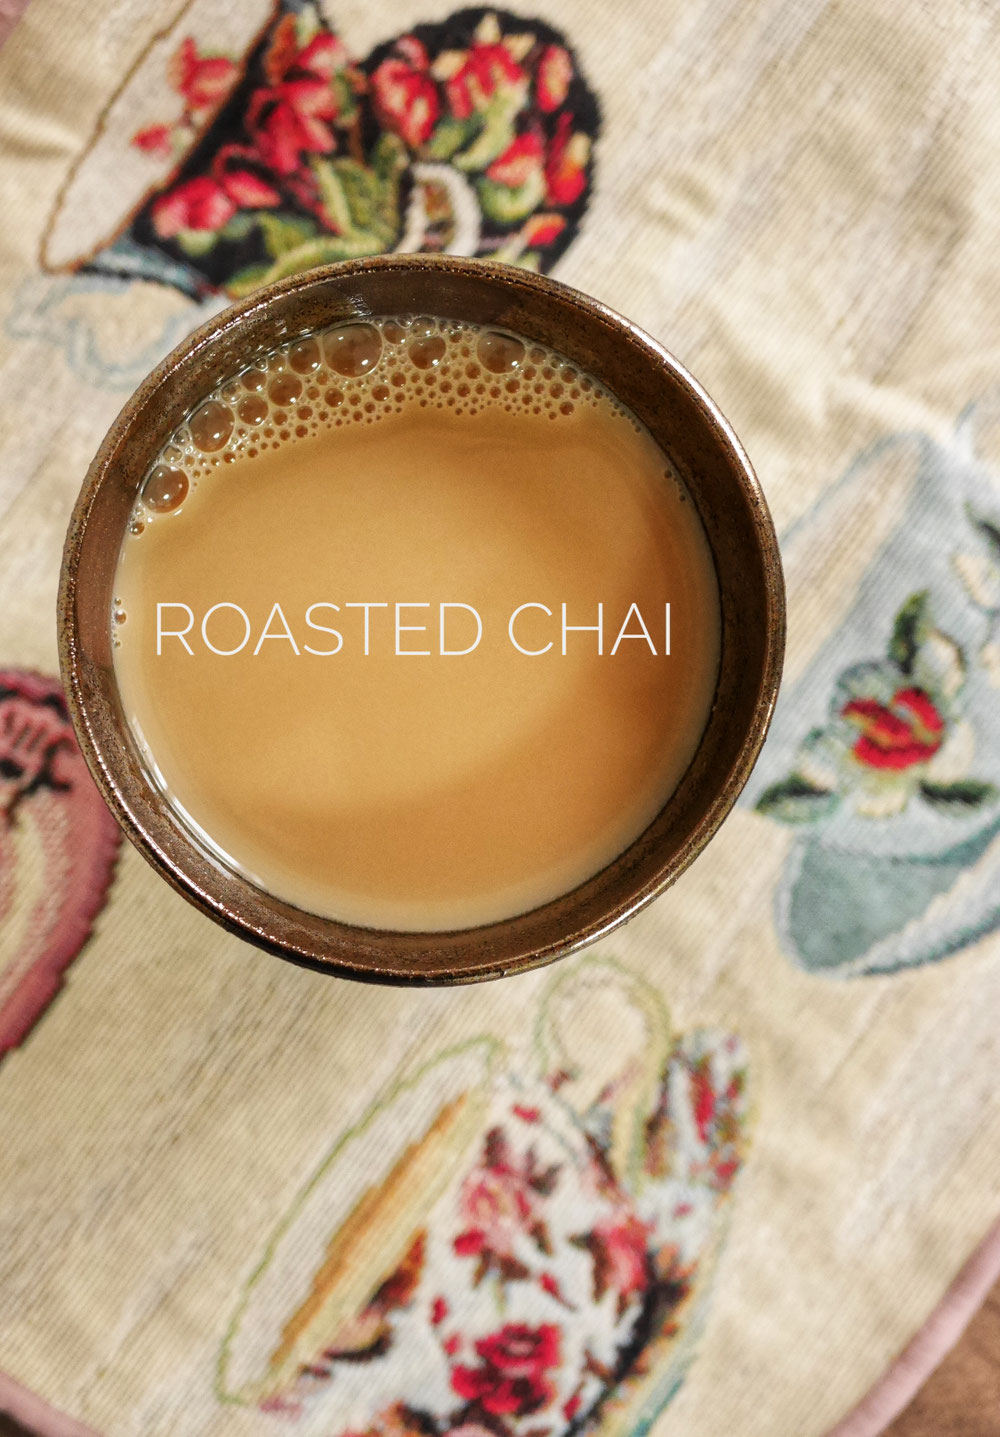 Roasted chai